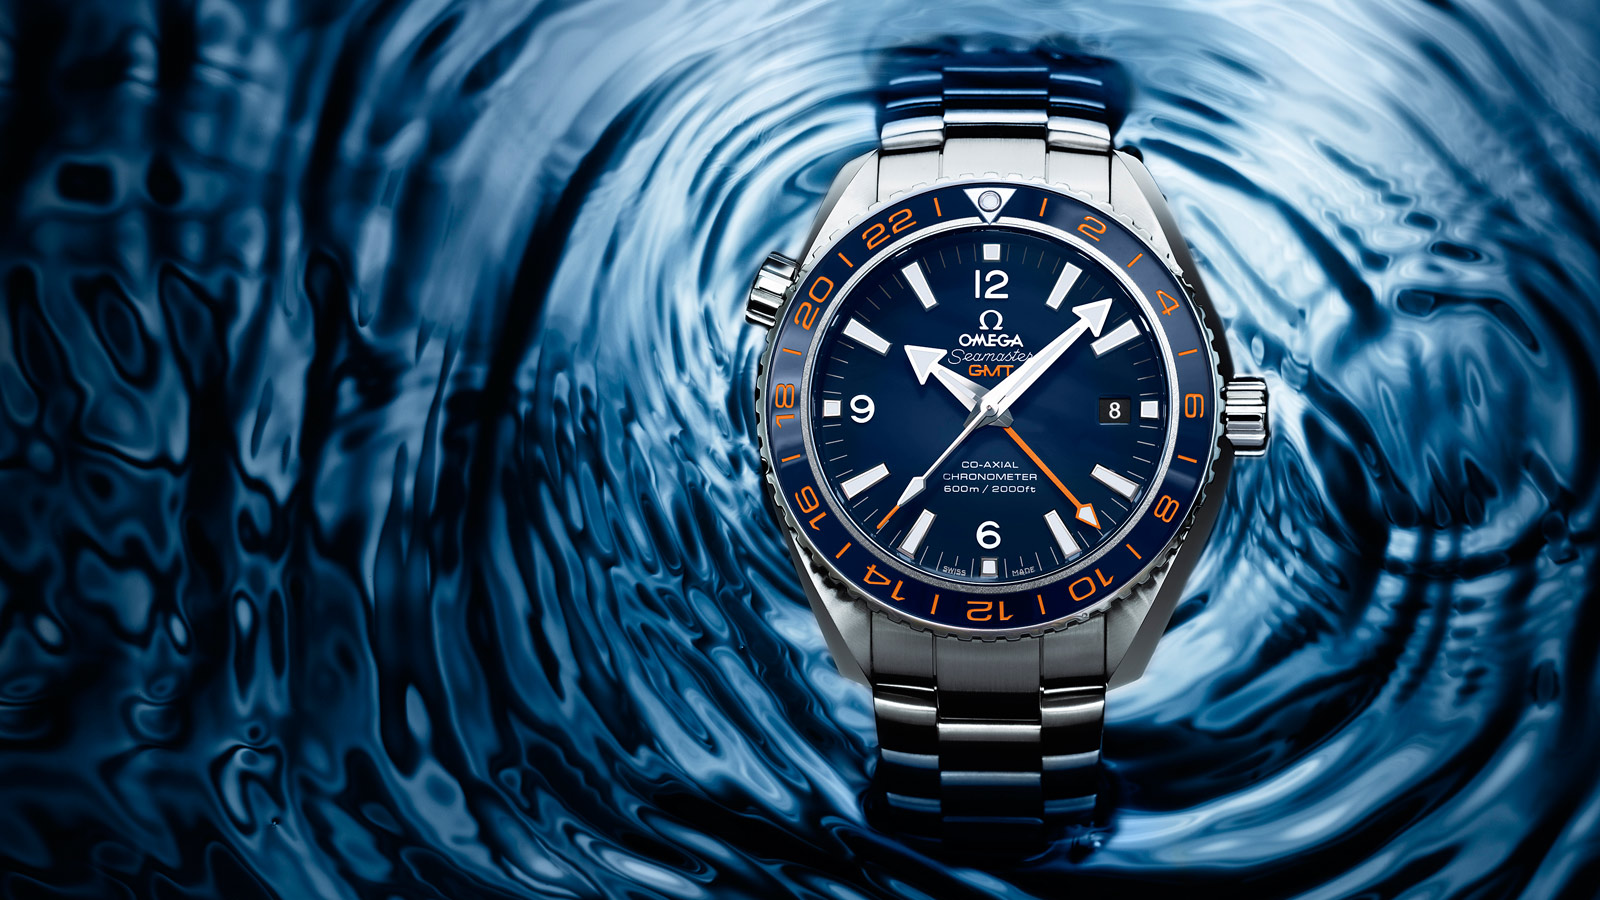 Seamaster Planet Ocean 600M Planet Ocean 600M Omega Co‑axial GMT 43.5 mm - 232.30.44.22.03.001 - View 3